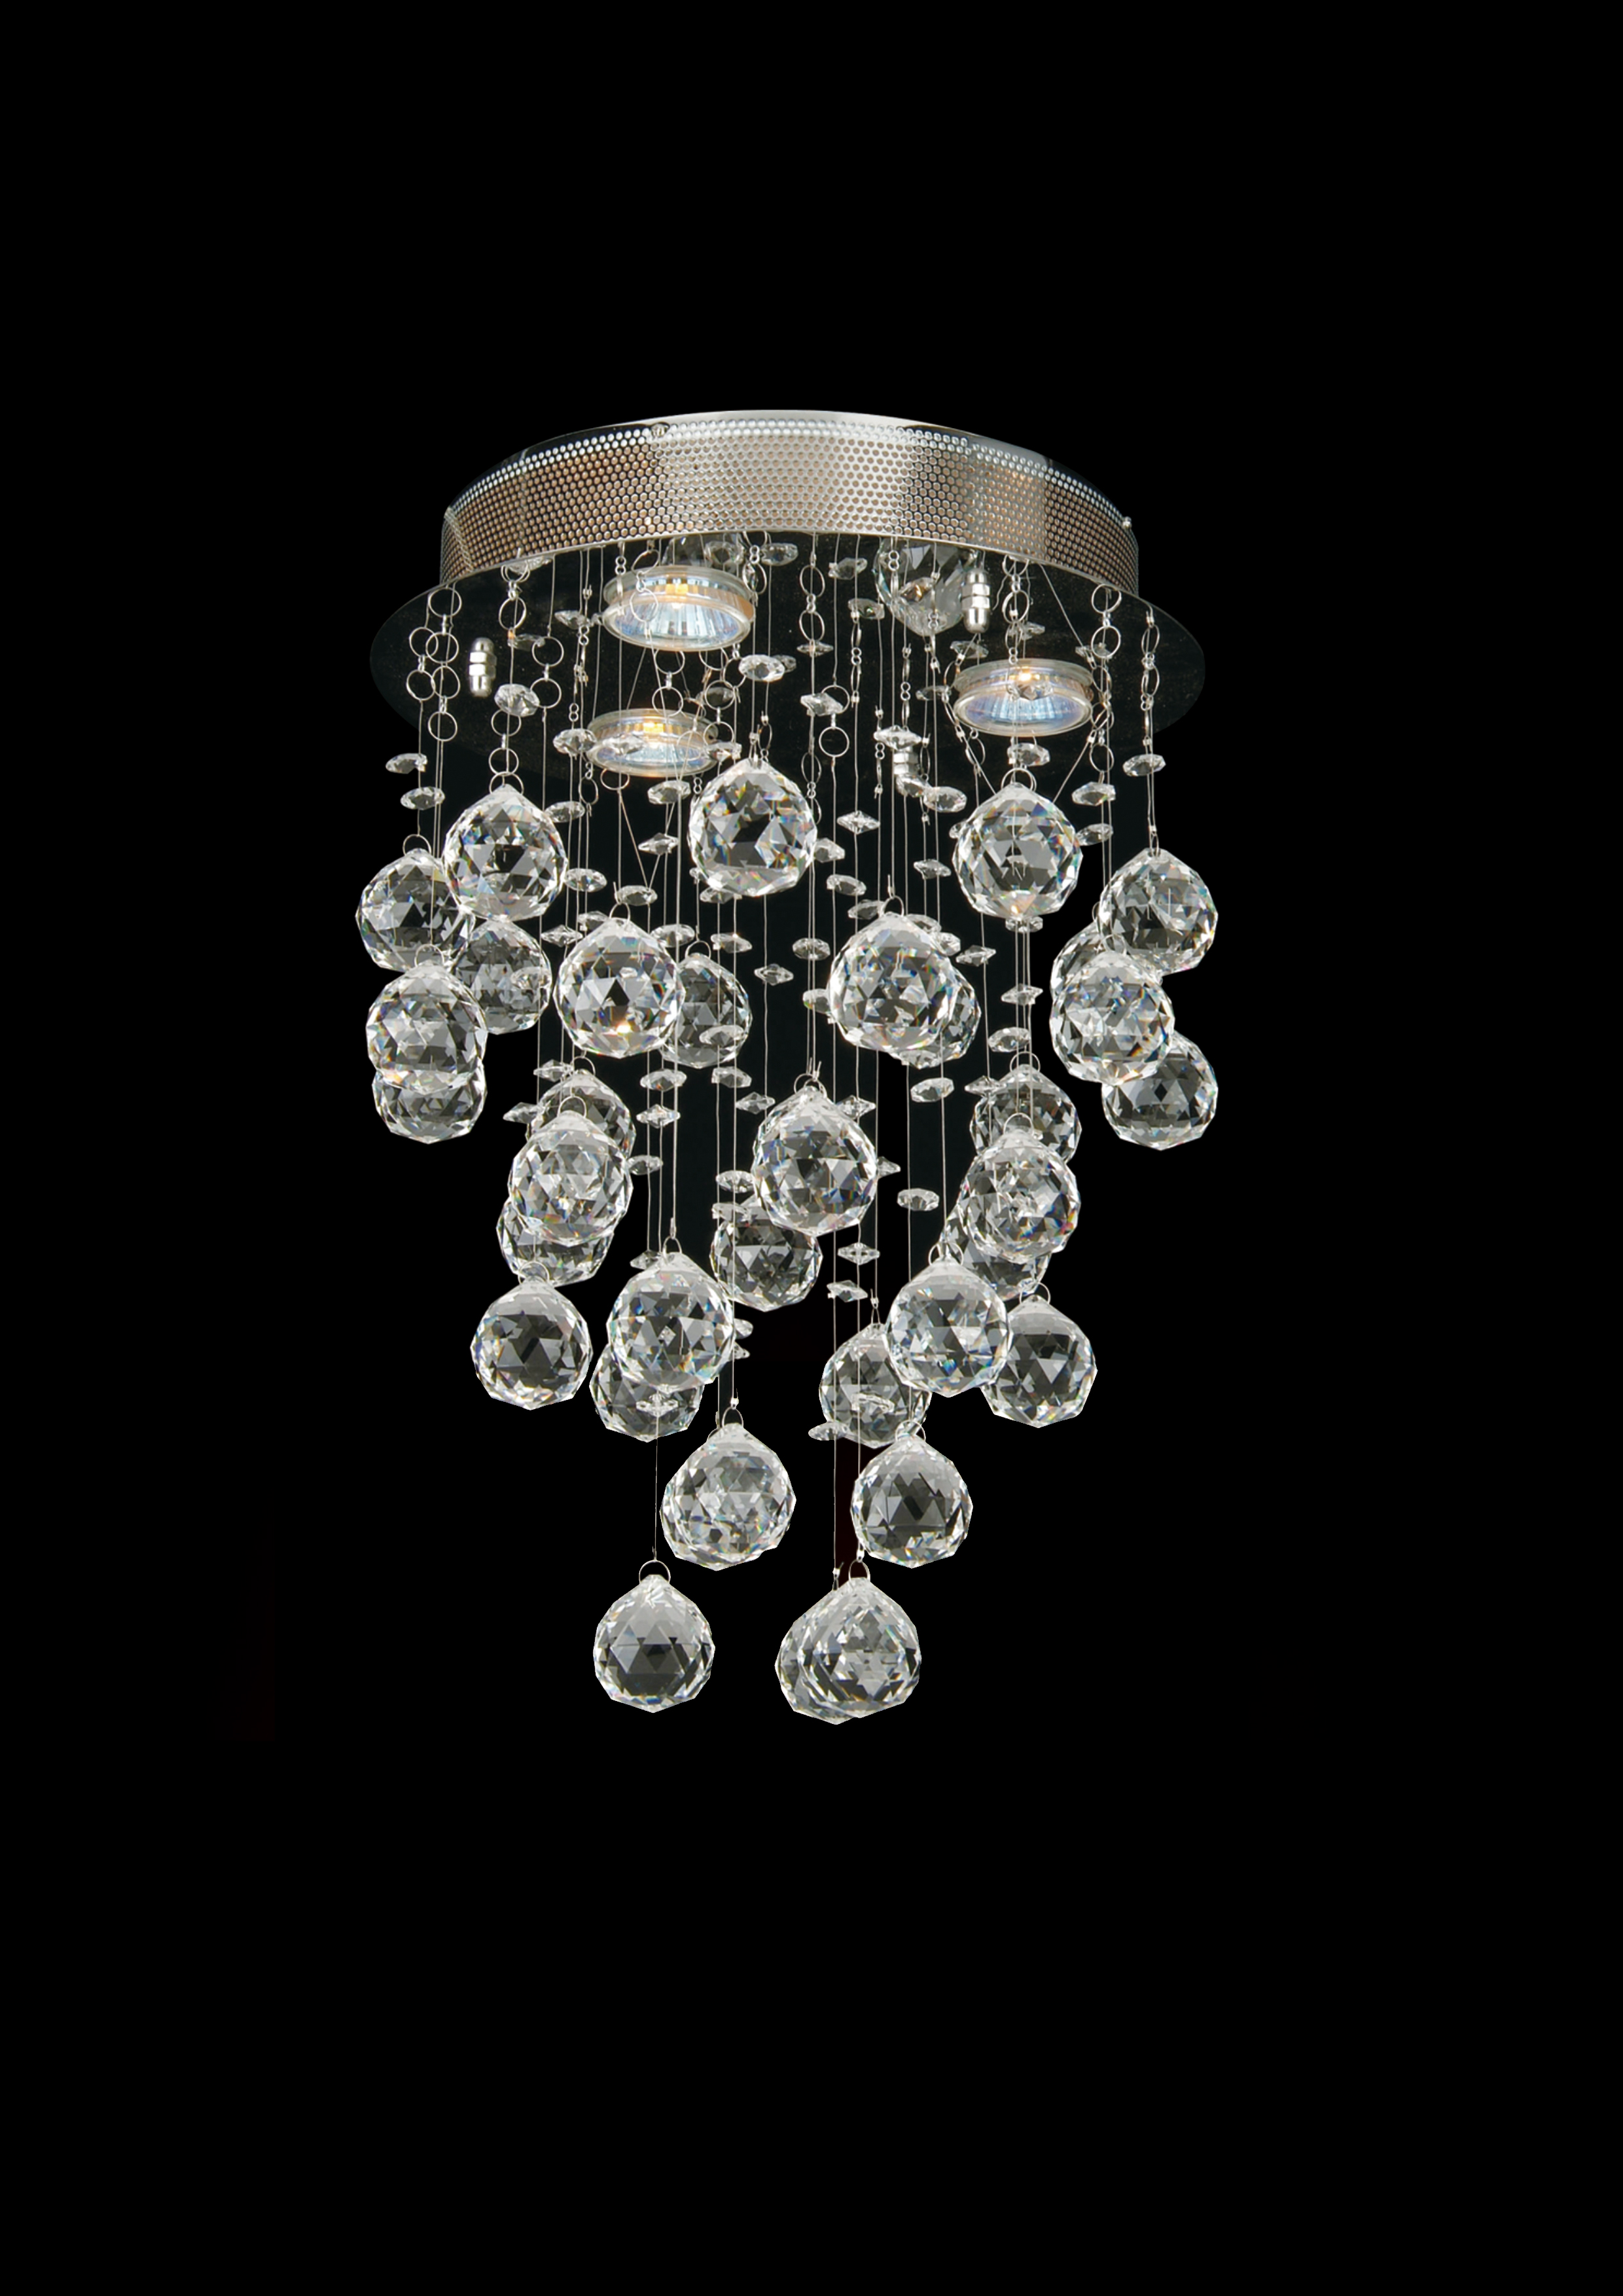 Bethel 3 Light Clear Crystal Lighting Fixture Gu10 50w Lx03